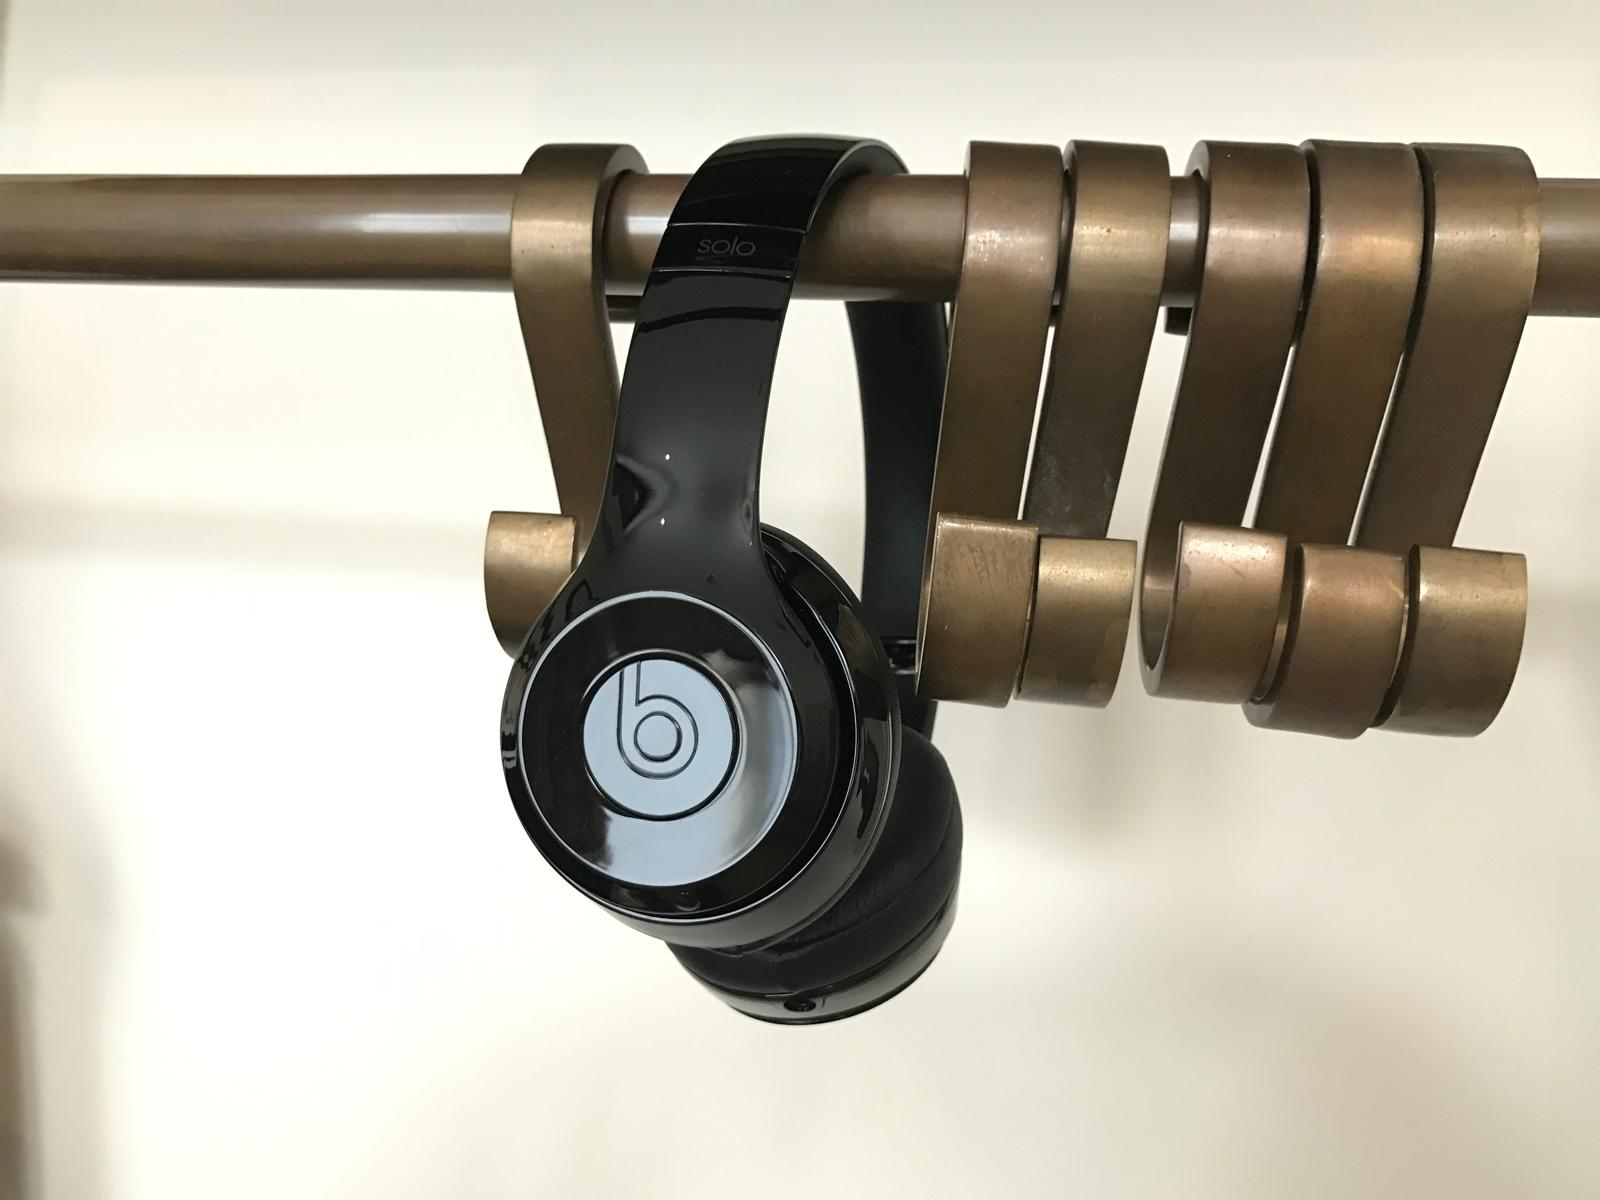 Beats By Dre lead full